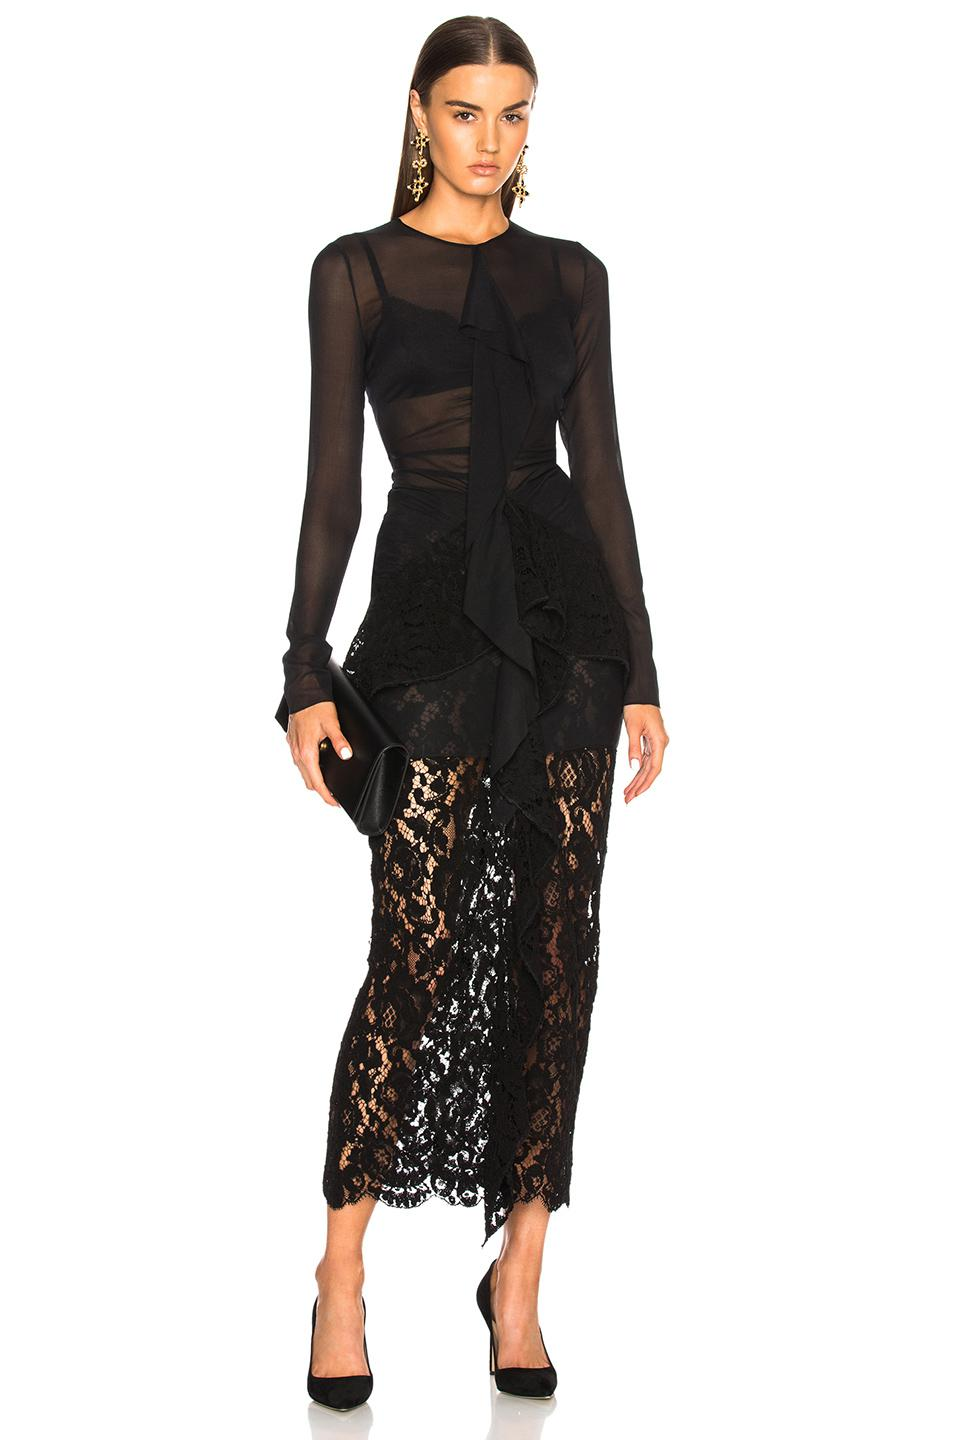 Long Sleeve Corded Lace Dress - Black Proenza Schouler mRpdj